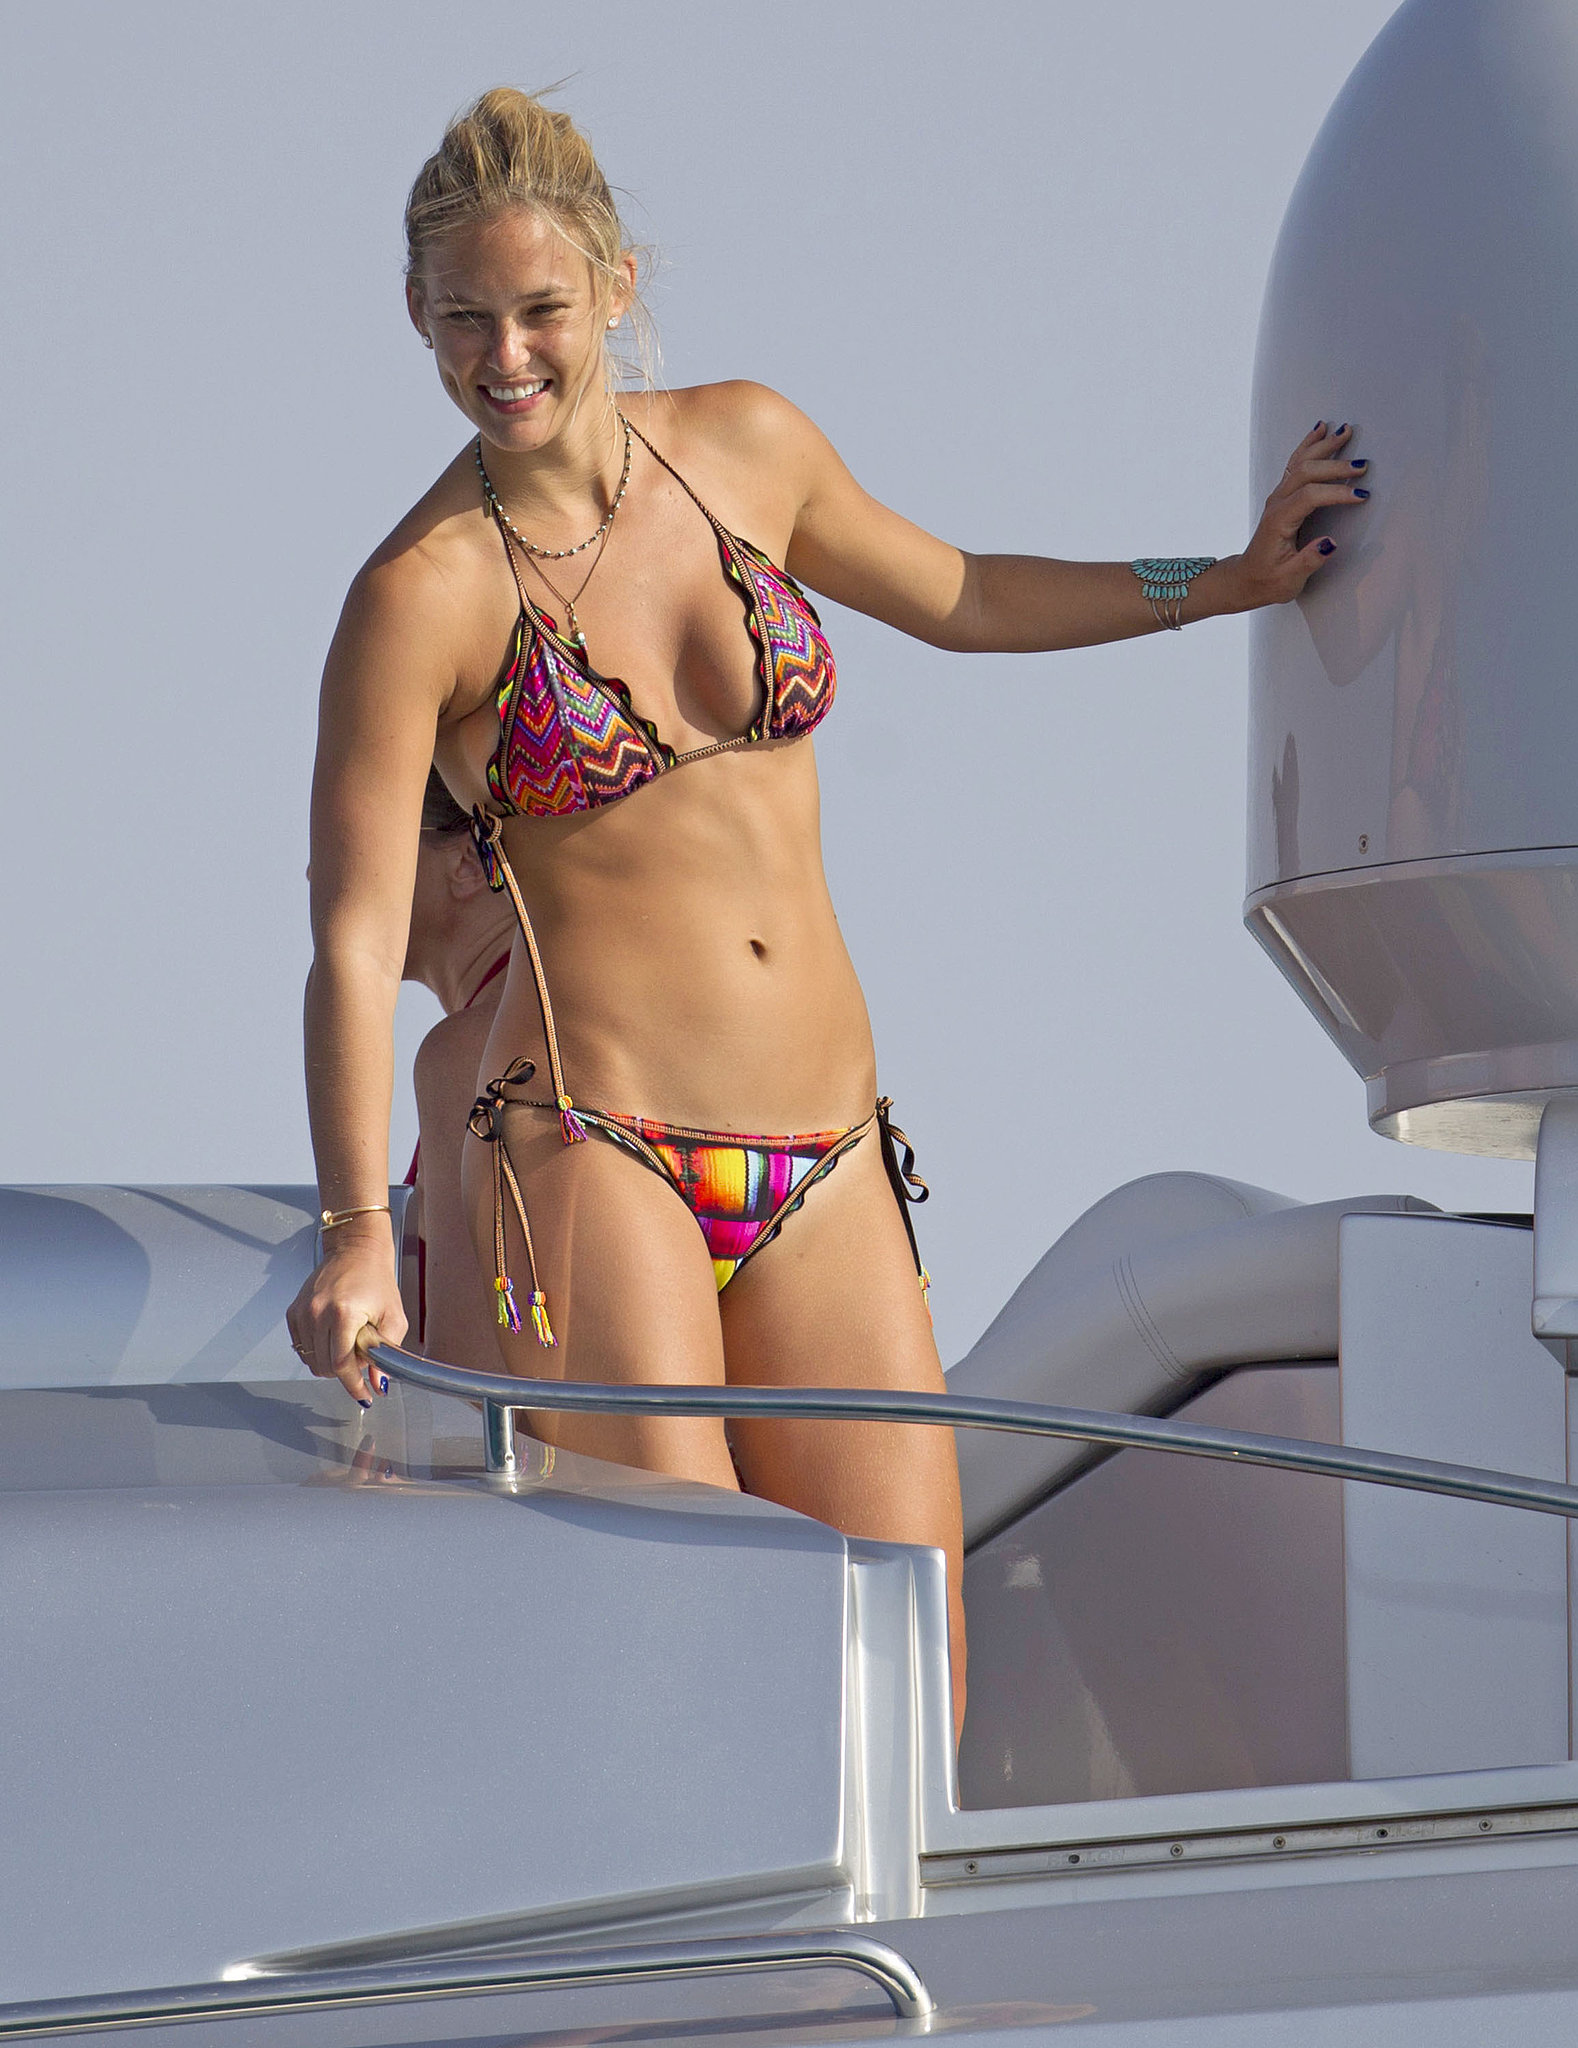 Bar Refaeli Bikini Bodies  Pic 8 of 35